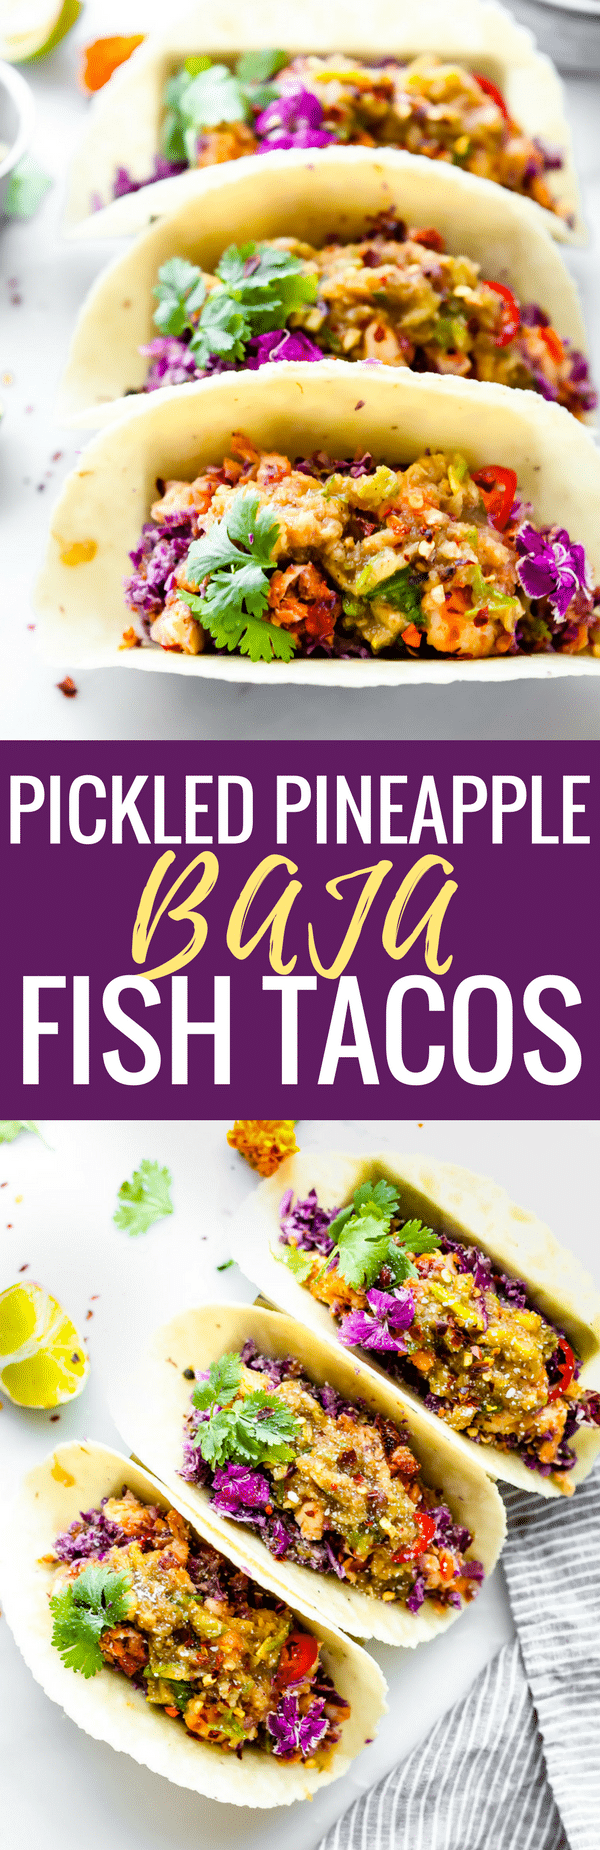 These Pickled Pineapple Baja Fish Tacos are my latest love! Easy to make with homemade pickled pineapple relish, cabbage slaw with avocado cream, and Baja style fried fish all wrapped in a warm gluten free tortilla! So much flavor but also SO simple and healthy to make. www.cottercrunch.com Paleo friendly options.